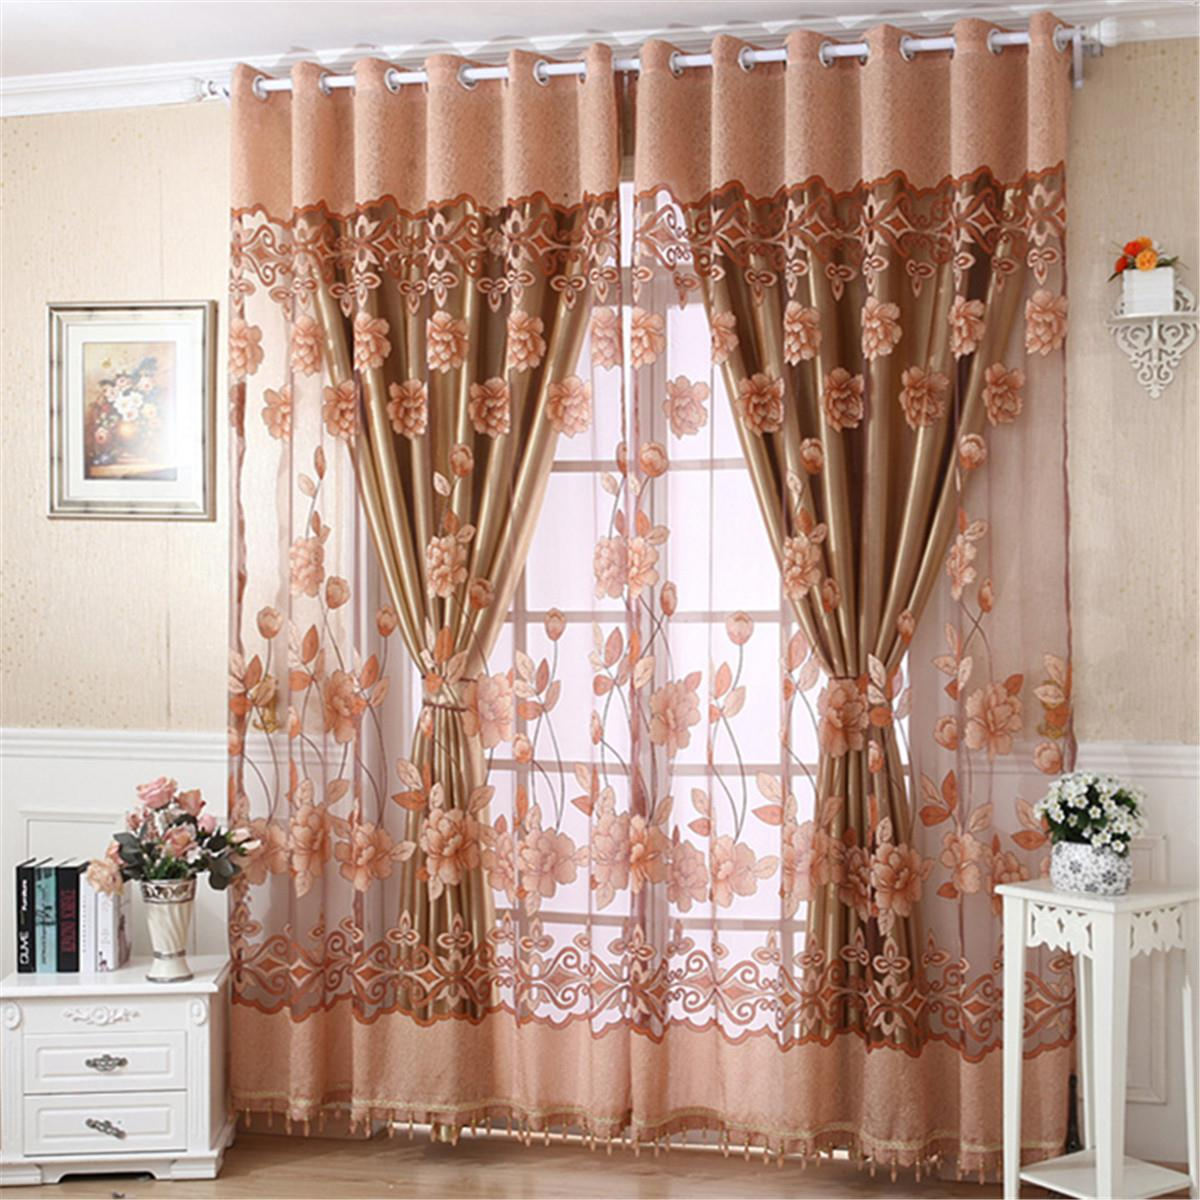 Black out curtains elegant valance curtains beaded valance curtains - Elegant Flower Print Tulle Door Drape Window Curtain Home Panel Sheer Scarf Valances Living Room Bedroom